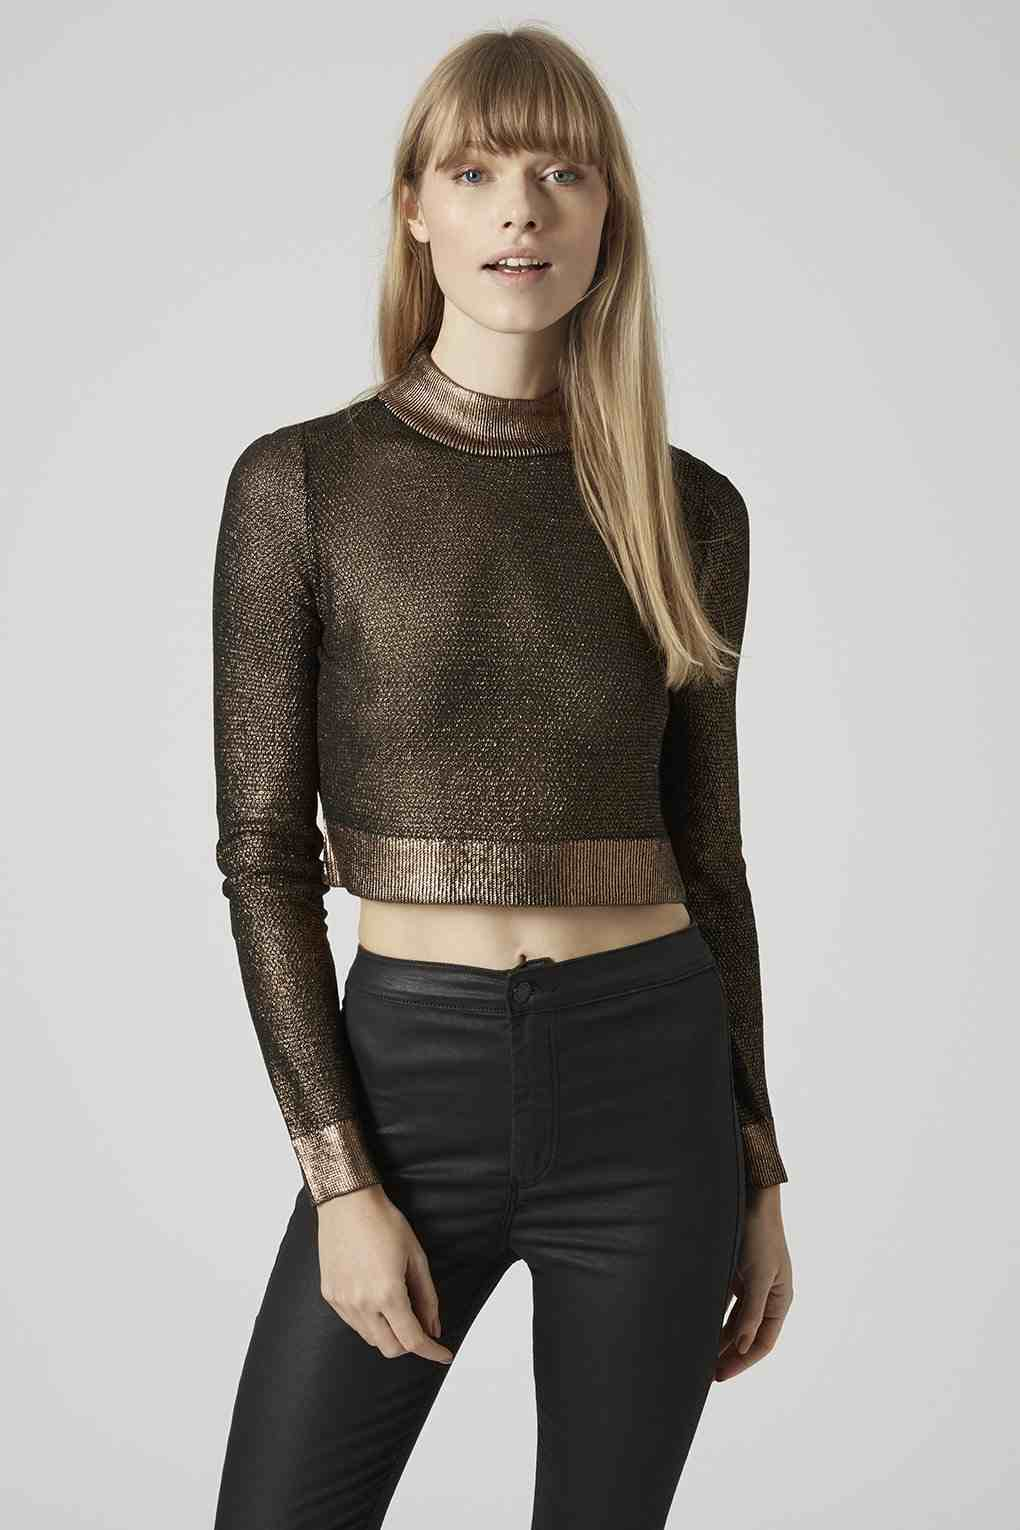 Topshop - Pull(26 €)